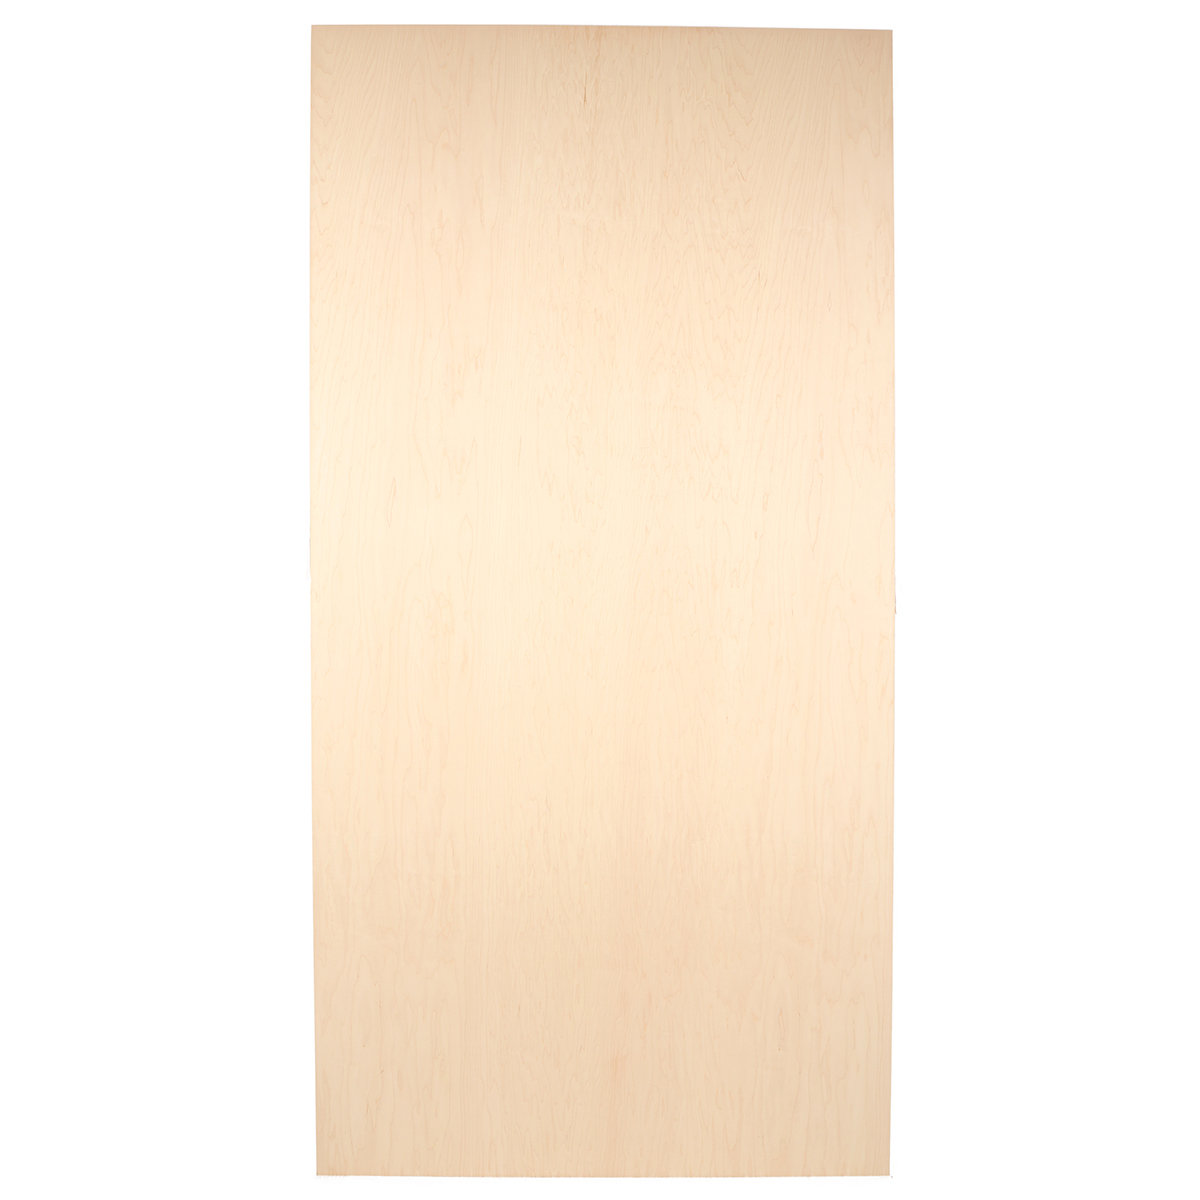 Maple Cabinet Grade Plywood (MDF core 48 1/2 x 96 1/2 sheet  #B16F1A 1200x1200